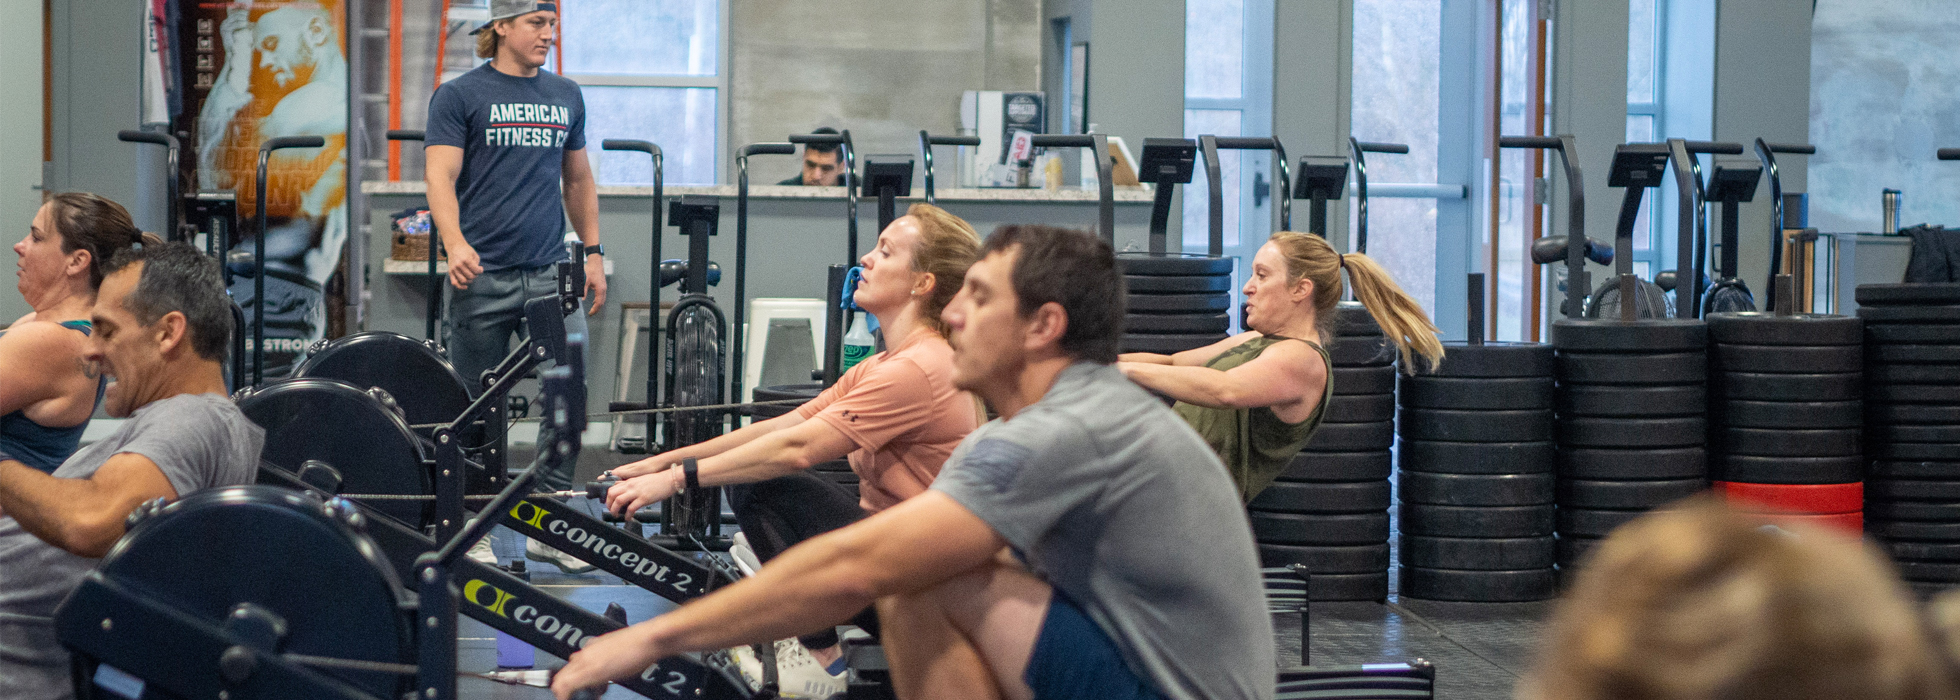 CrossFit Training near Indianapolis IN, CrossFit Training near Northwest Indianapolis IN, CrossFit Training near Zionsville IN, CrossFit Training near Carmel IN, CrossFit Training near Whitestown IN